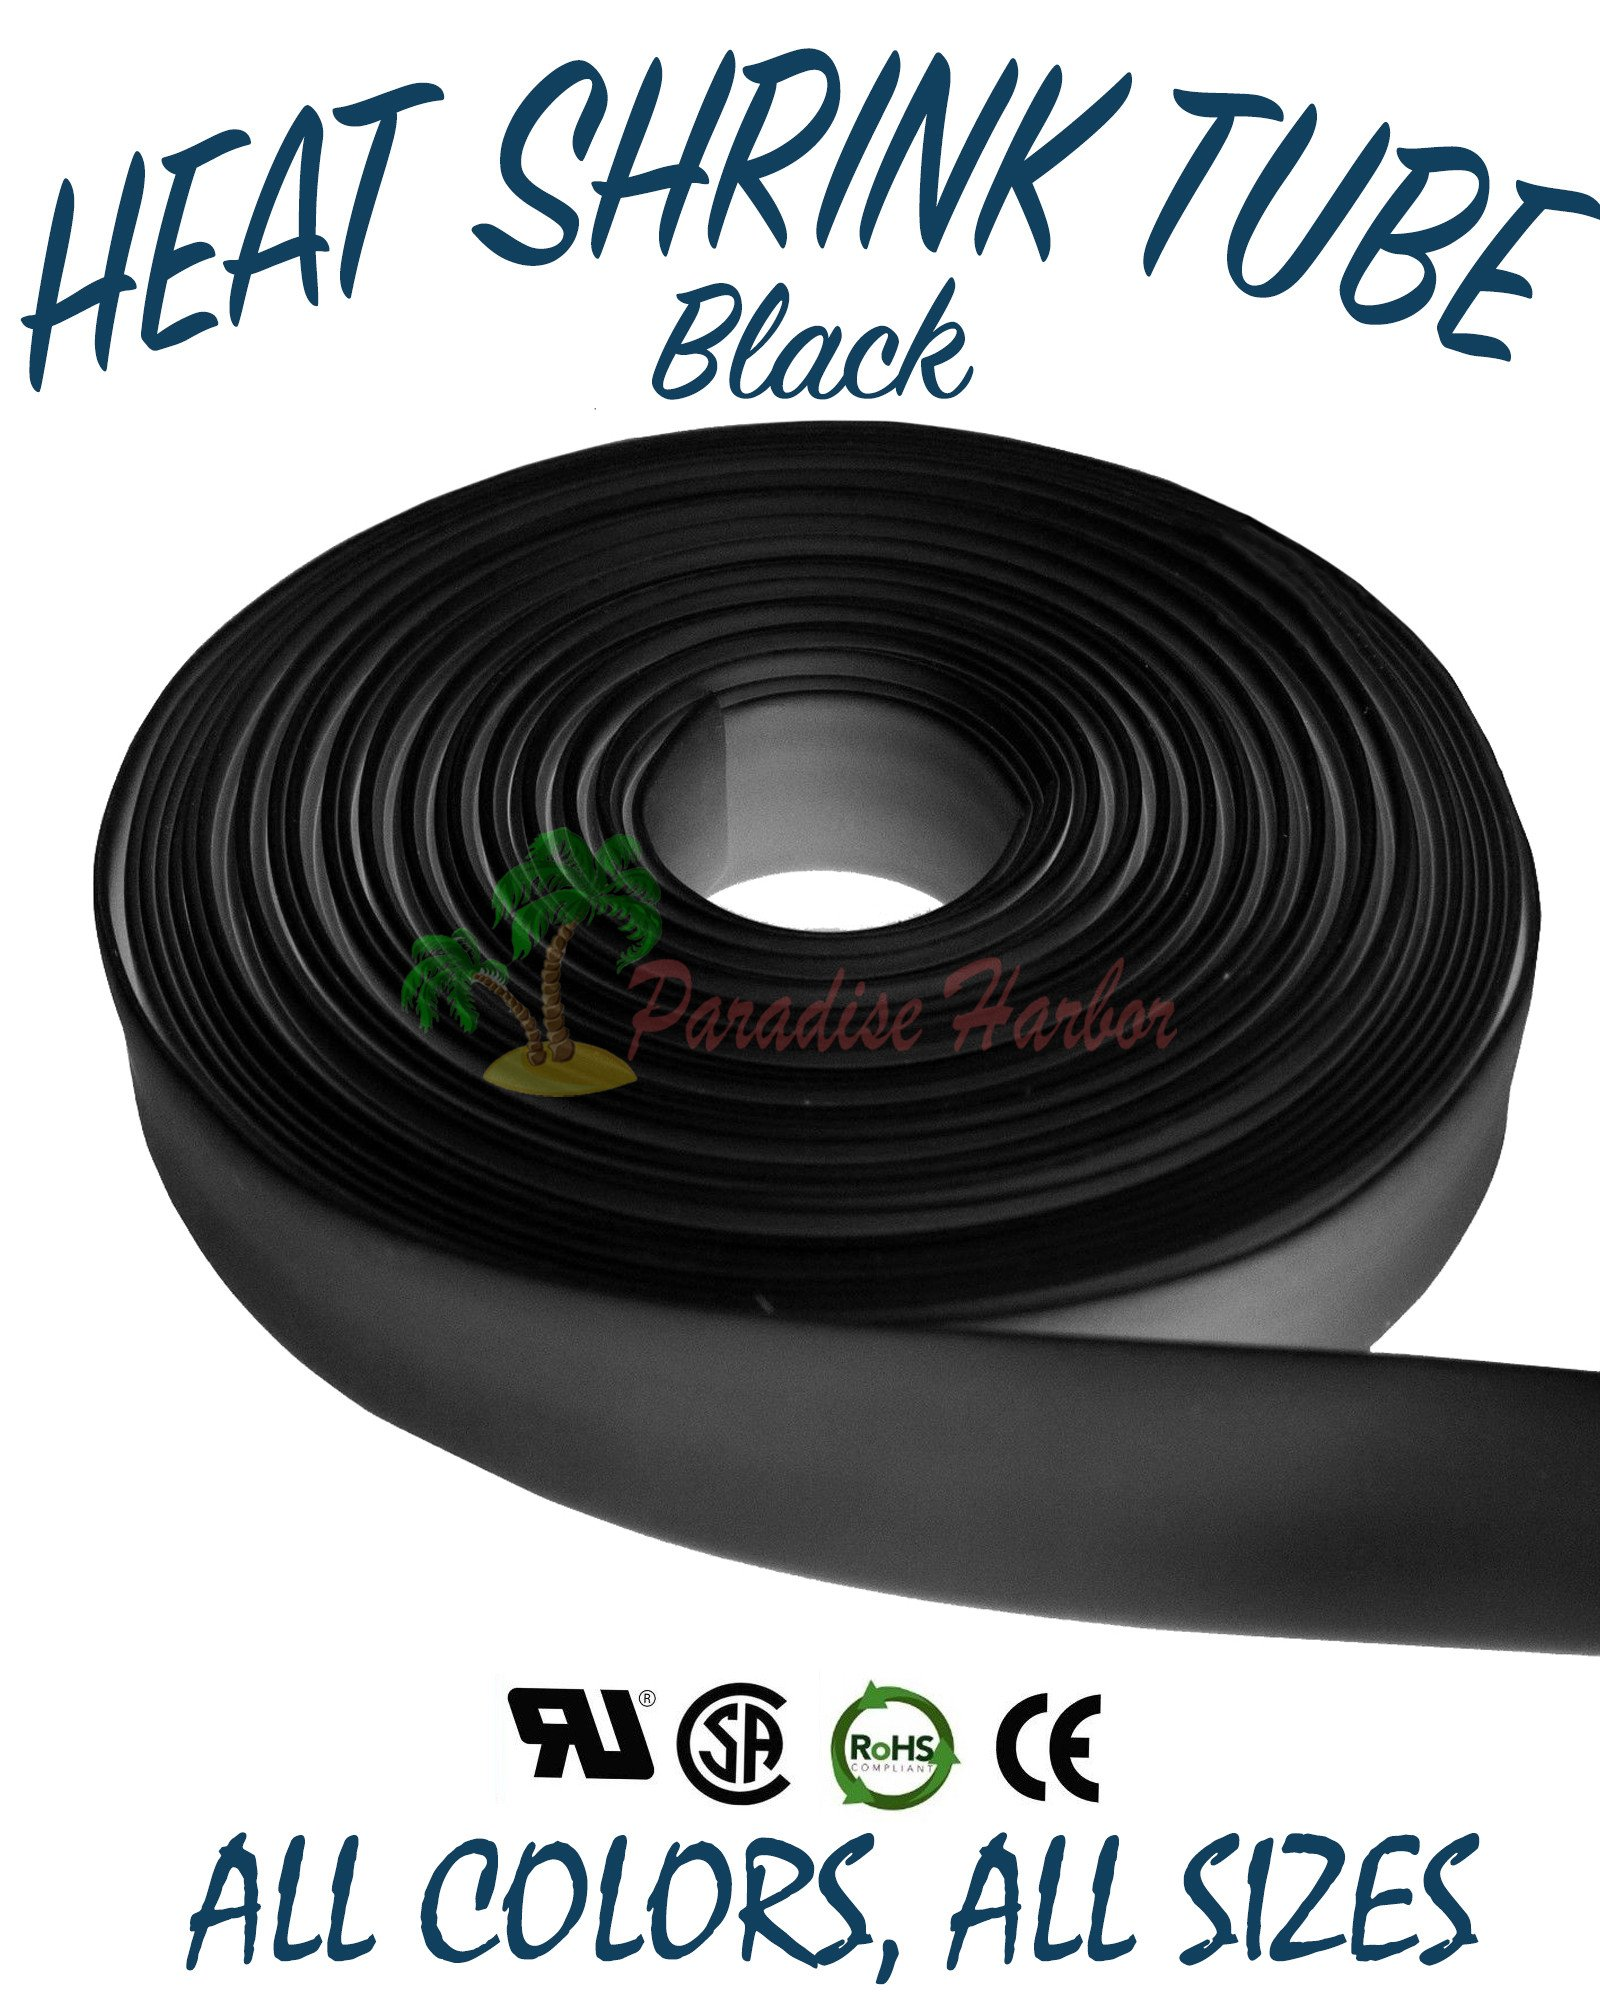 Paradise Harbor 100 Ft Black 3/4'' 19mm Heat Shrink Tubing Polyolefin Heat Shrink Tube 2:1 Heat Shrink Tubing Tube Cable